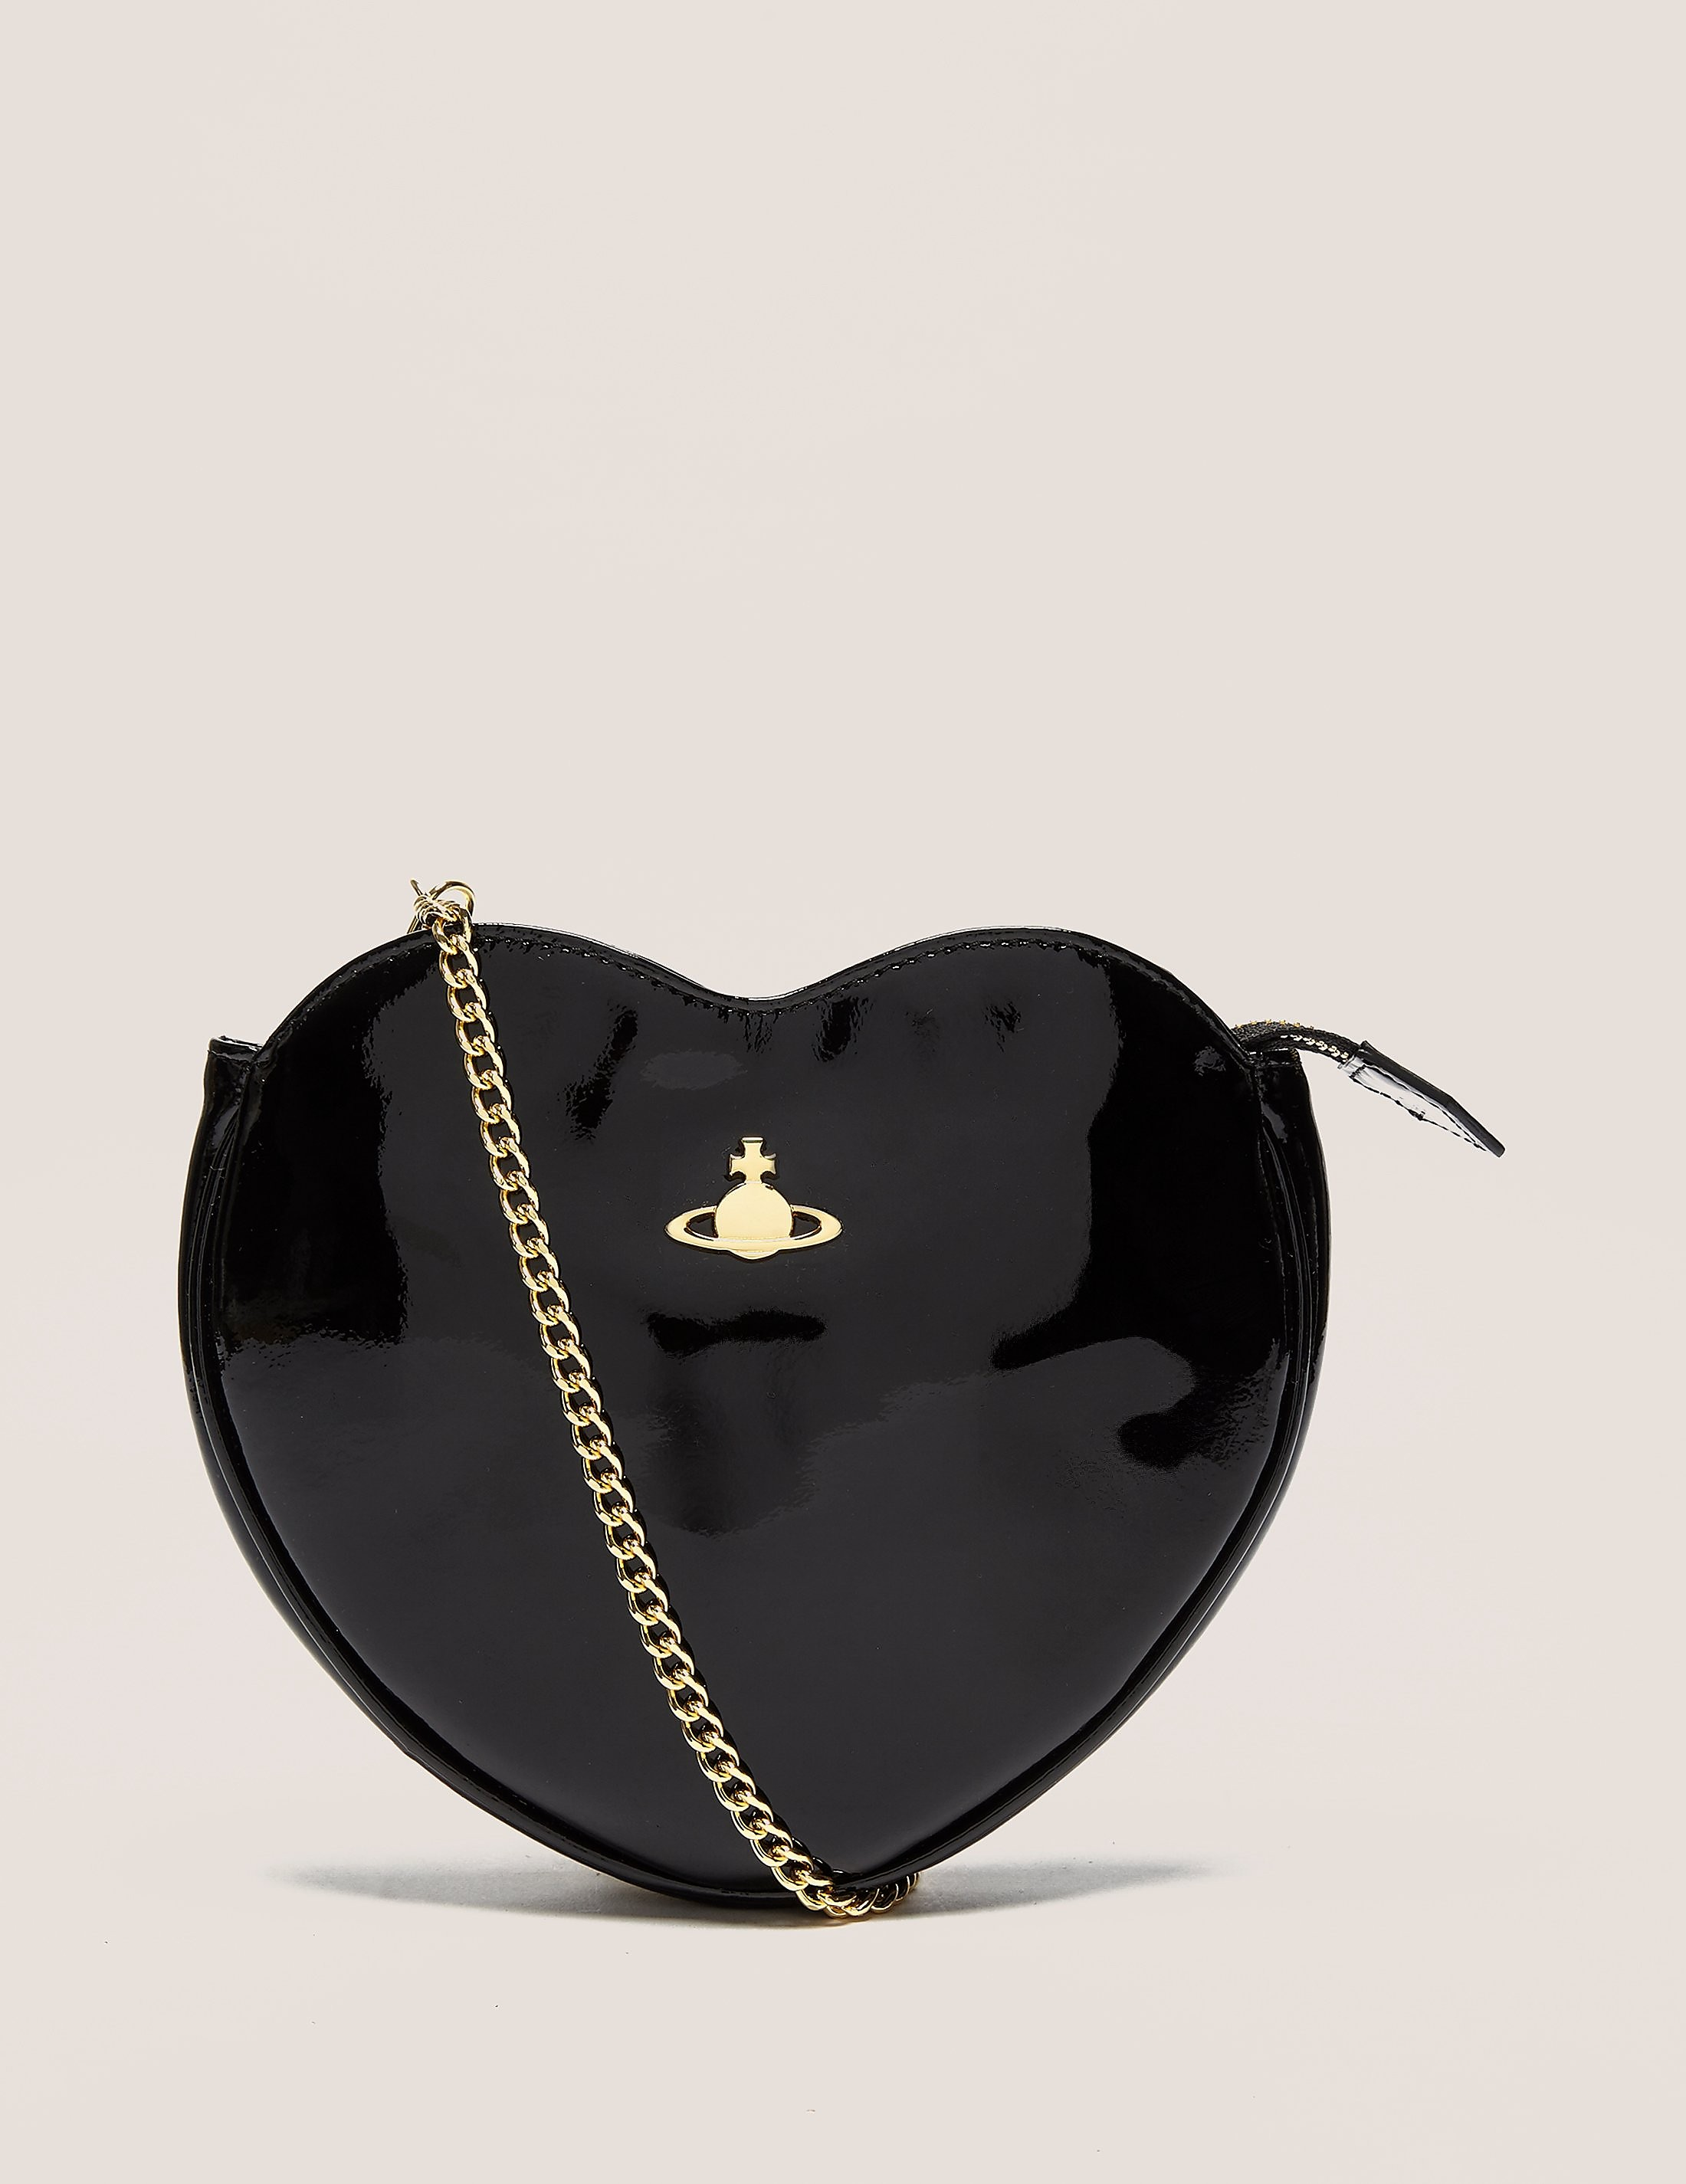 Vivienne Westwood Orb Heart Small Bag